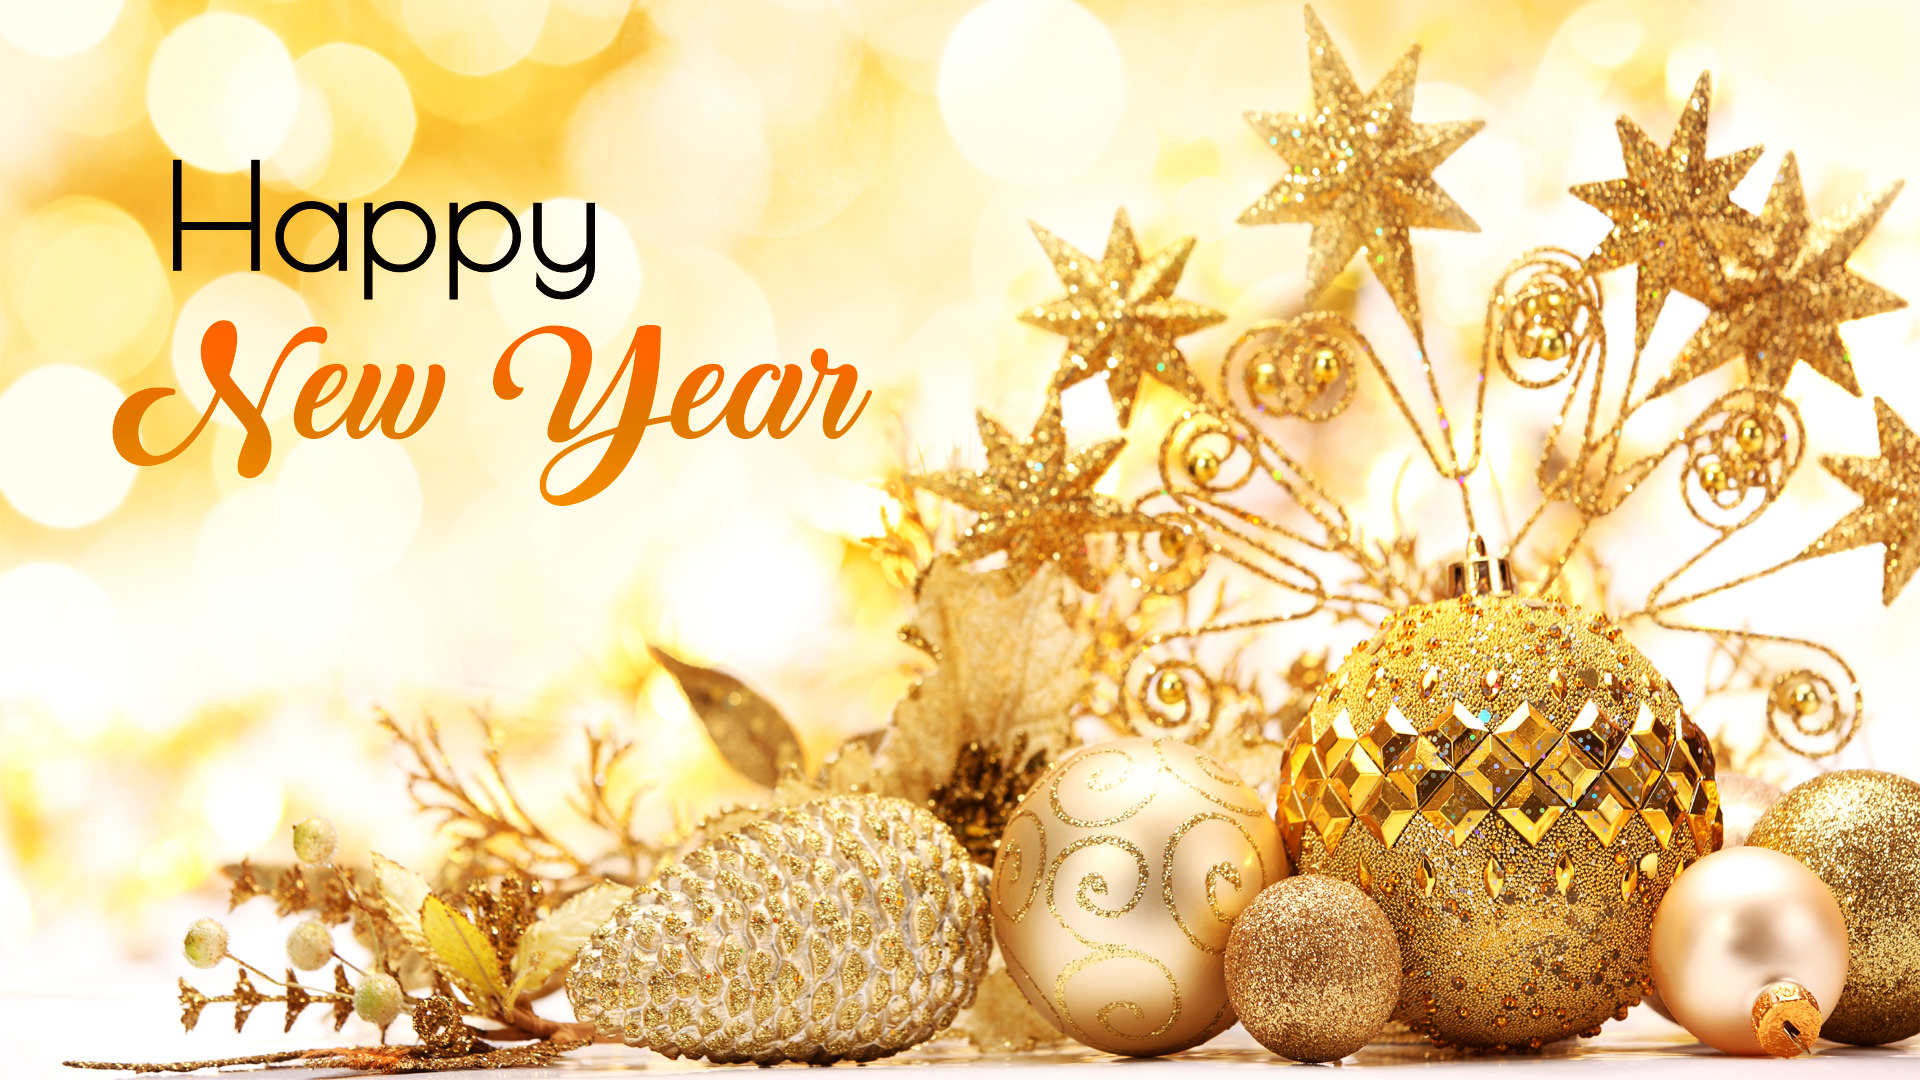 special happy new year 2018 wallpaper hd greetings desktop images